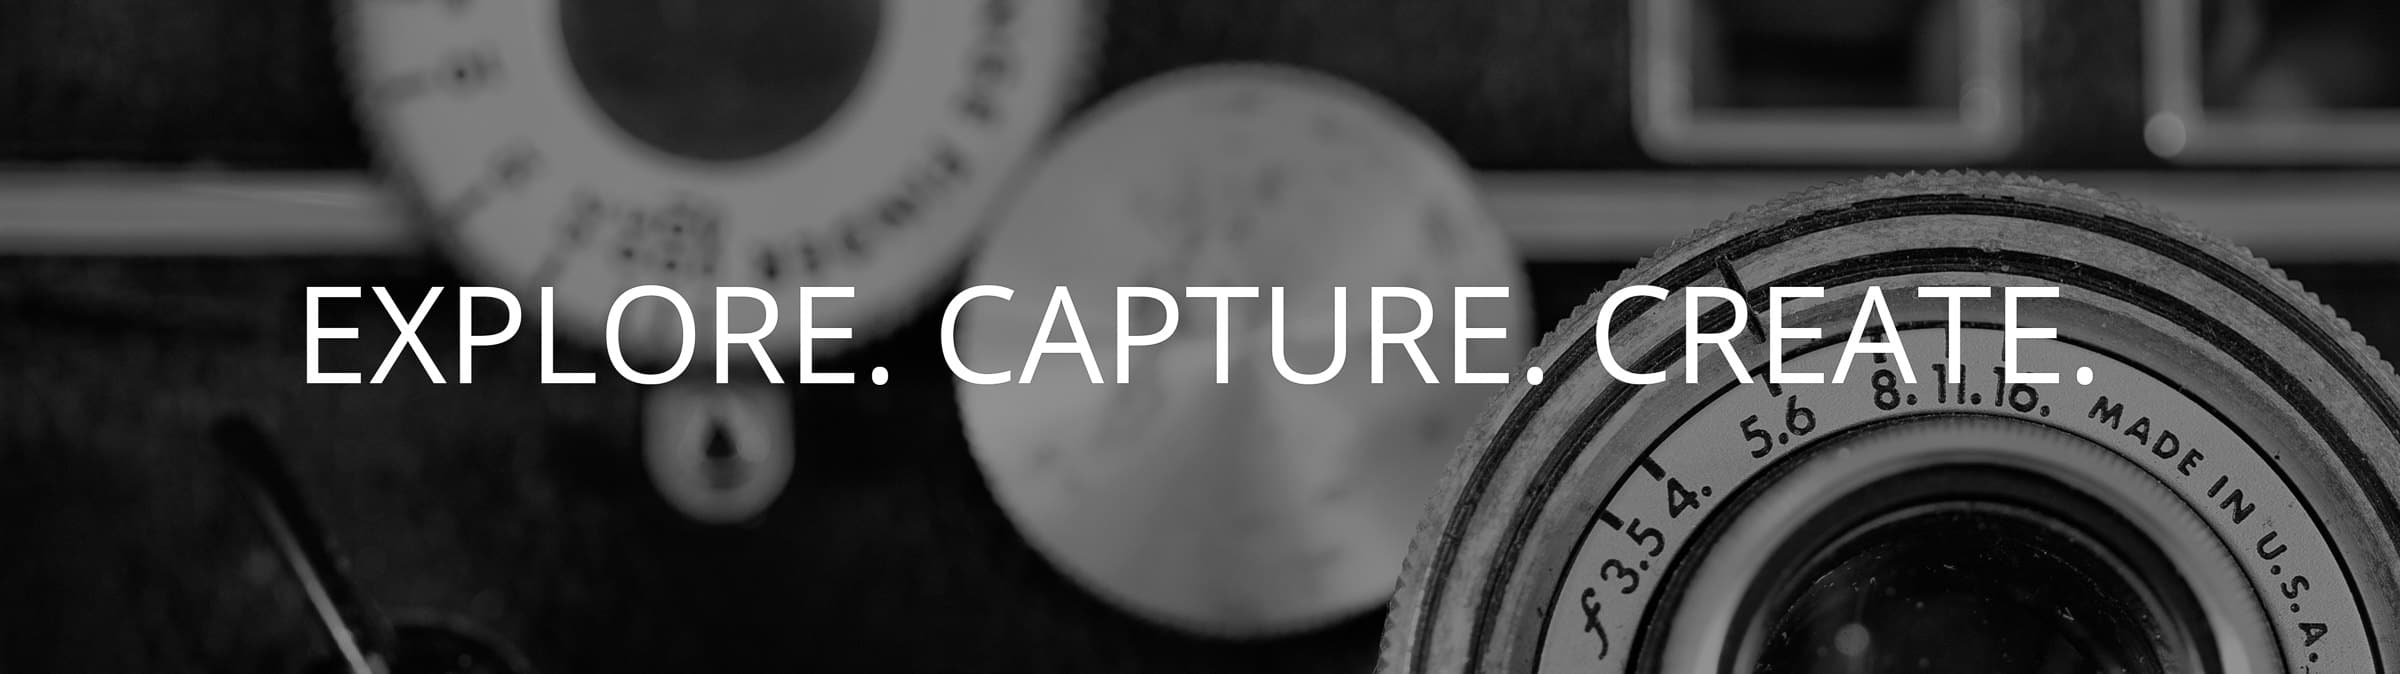 Explore. Capture. Create. Blog for Angela Andrieux Photography